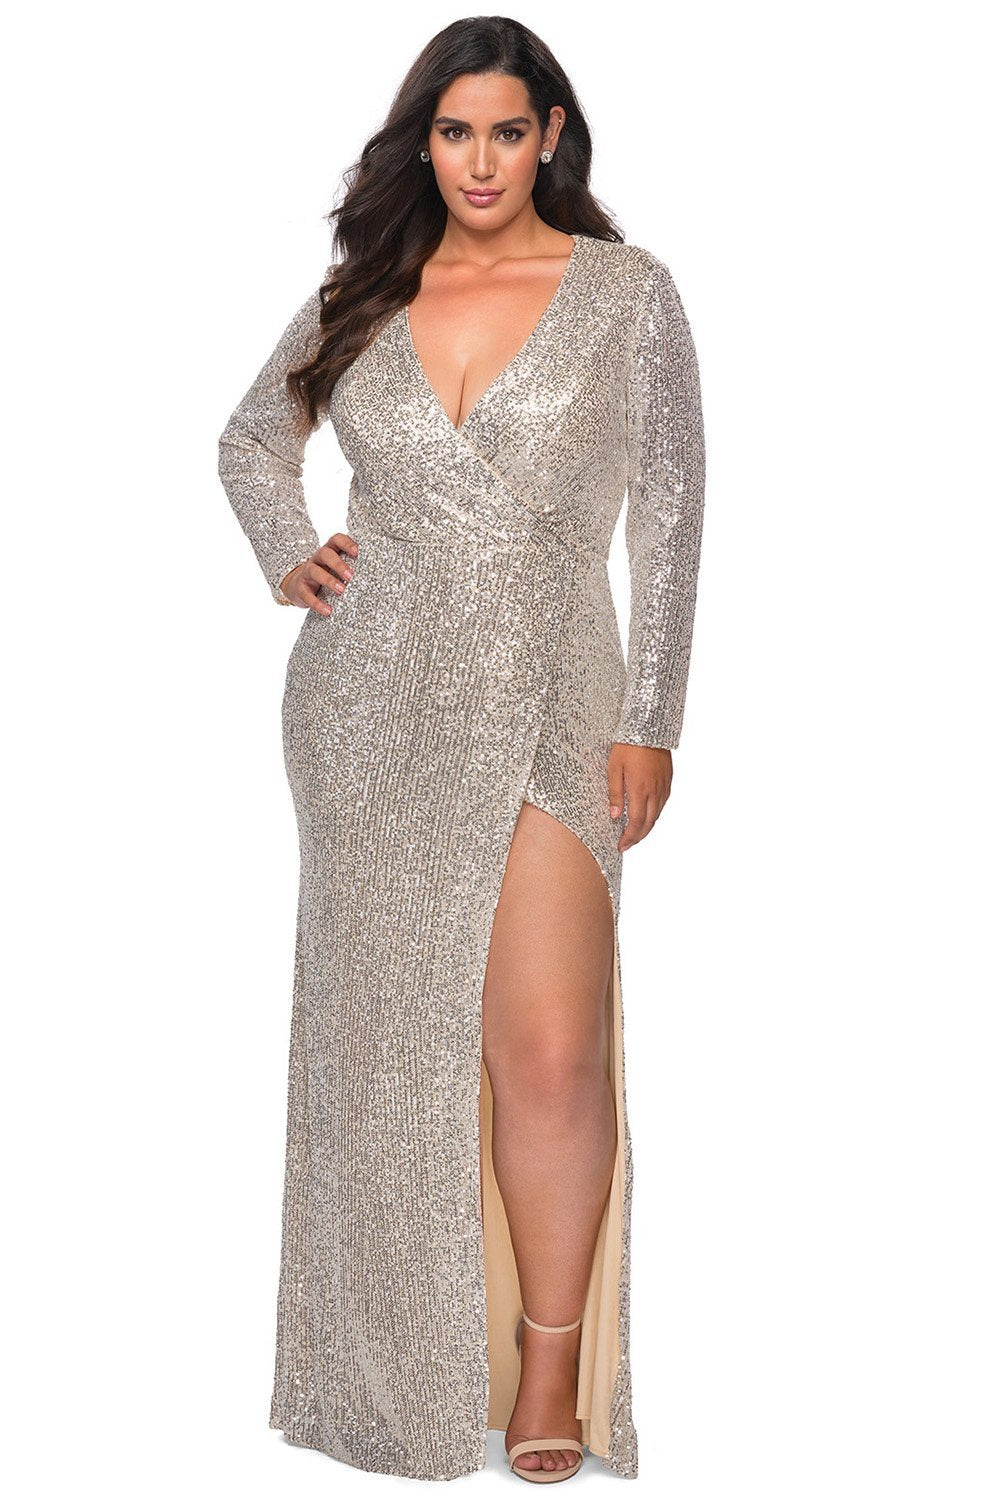 La Femme - Sequined Long Sleeve High Slit Dress 28880SC In Silver